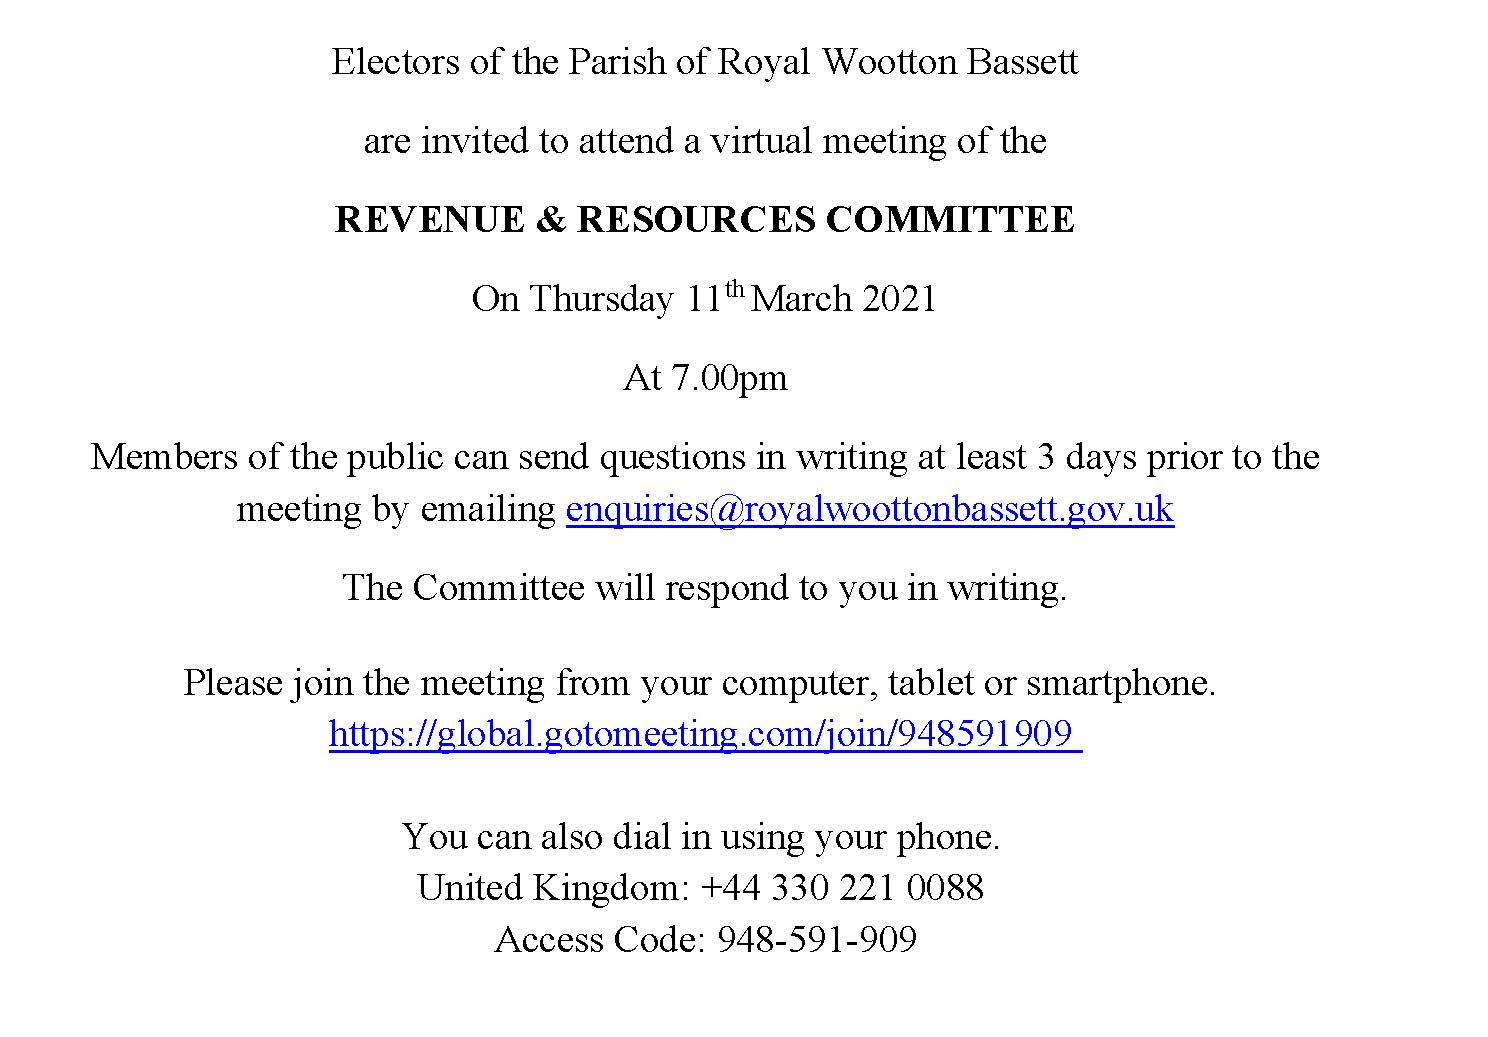 Revenue and Resources Meeting Notice on Thursday 11th March 2021